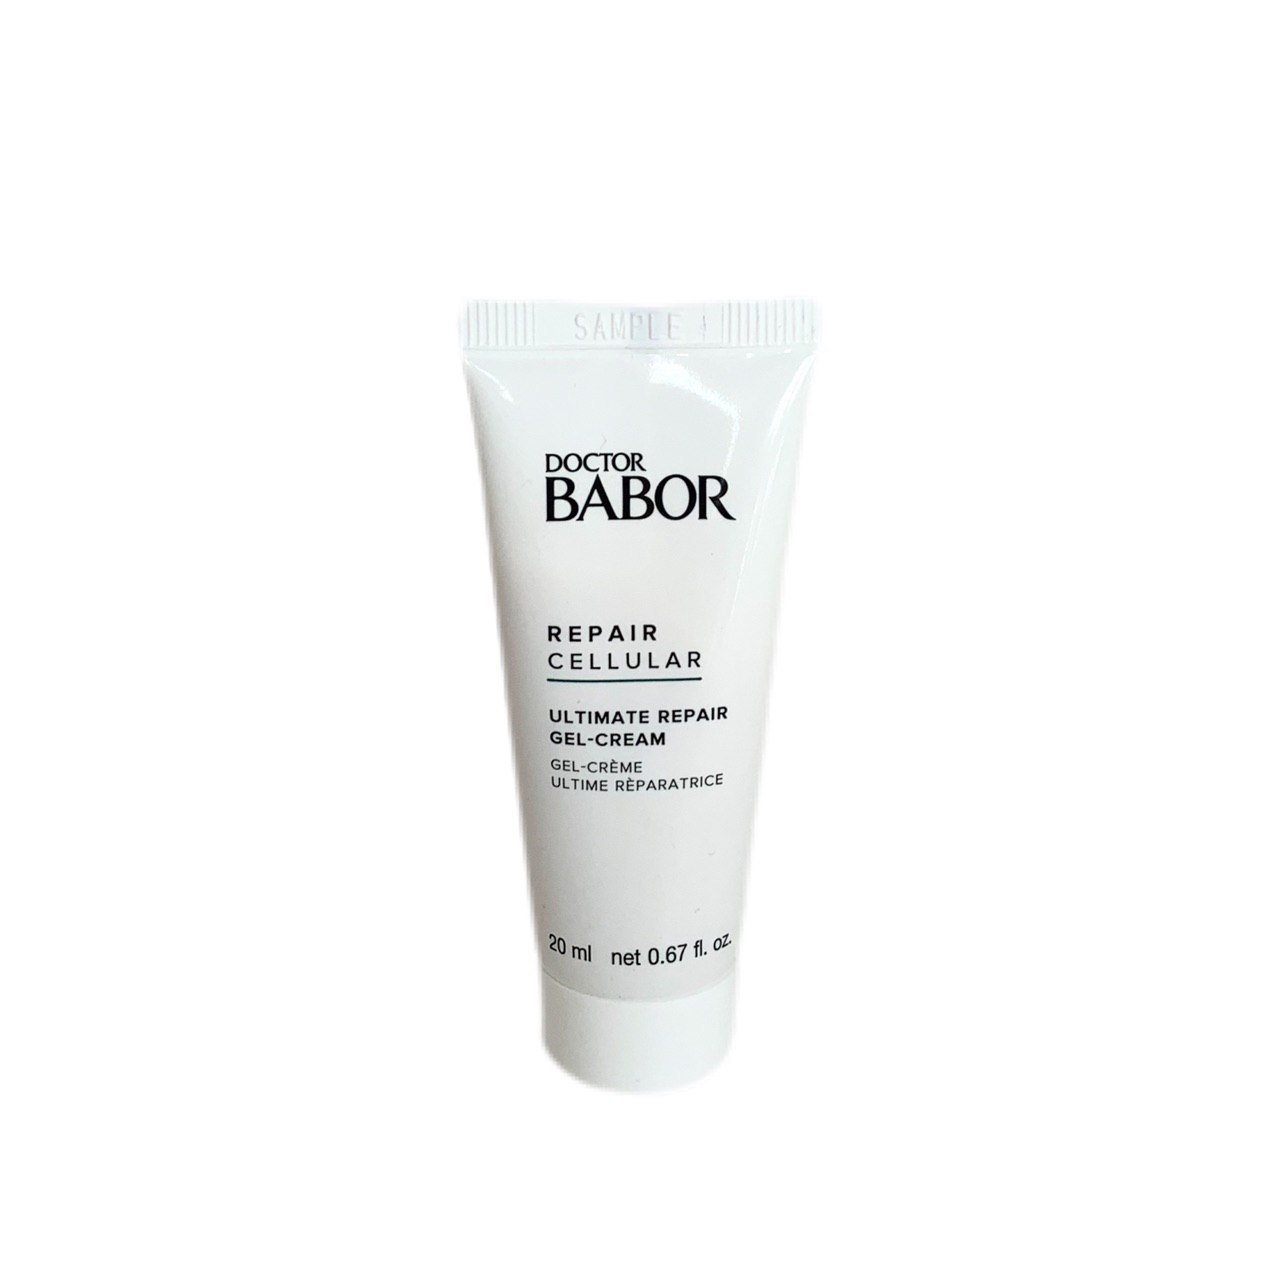 Крем-гель регенерирующий Doctor Babor Repair Cellular Ultimate Repair Cream-Gel mini 20 ml